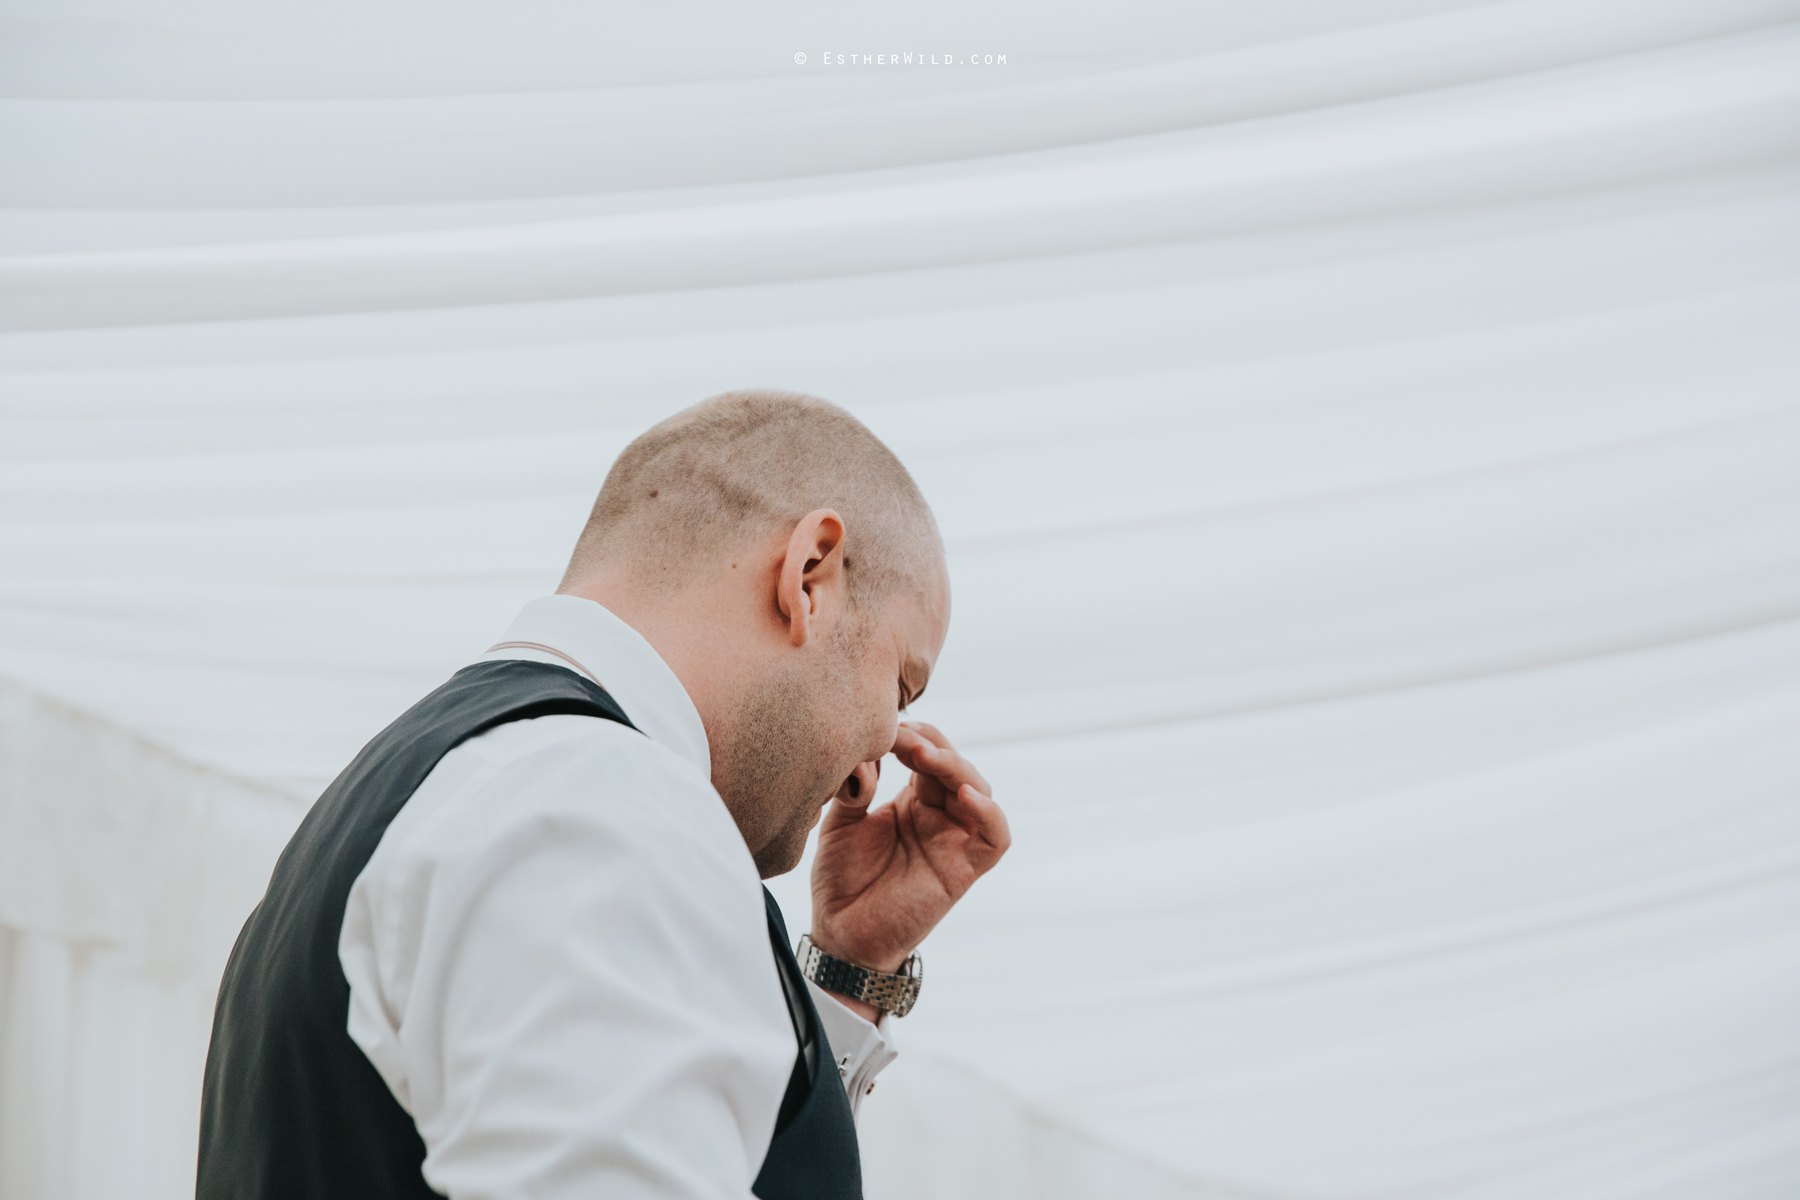 Wootton_Wedding_Copyright_Esther_Wild_Photographer_IMG_2954.jpg